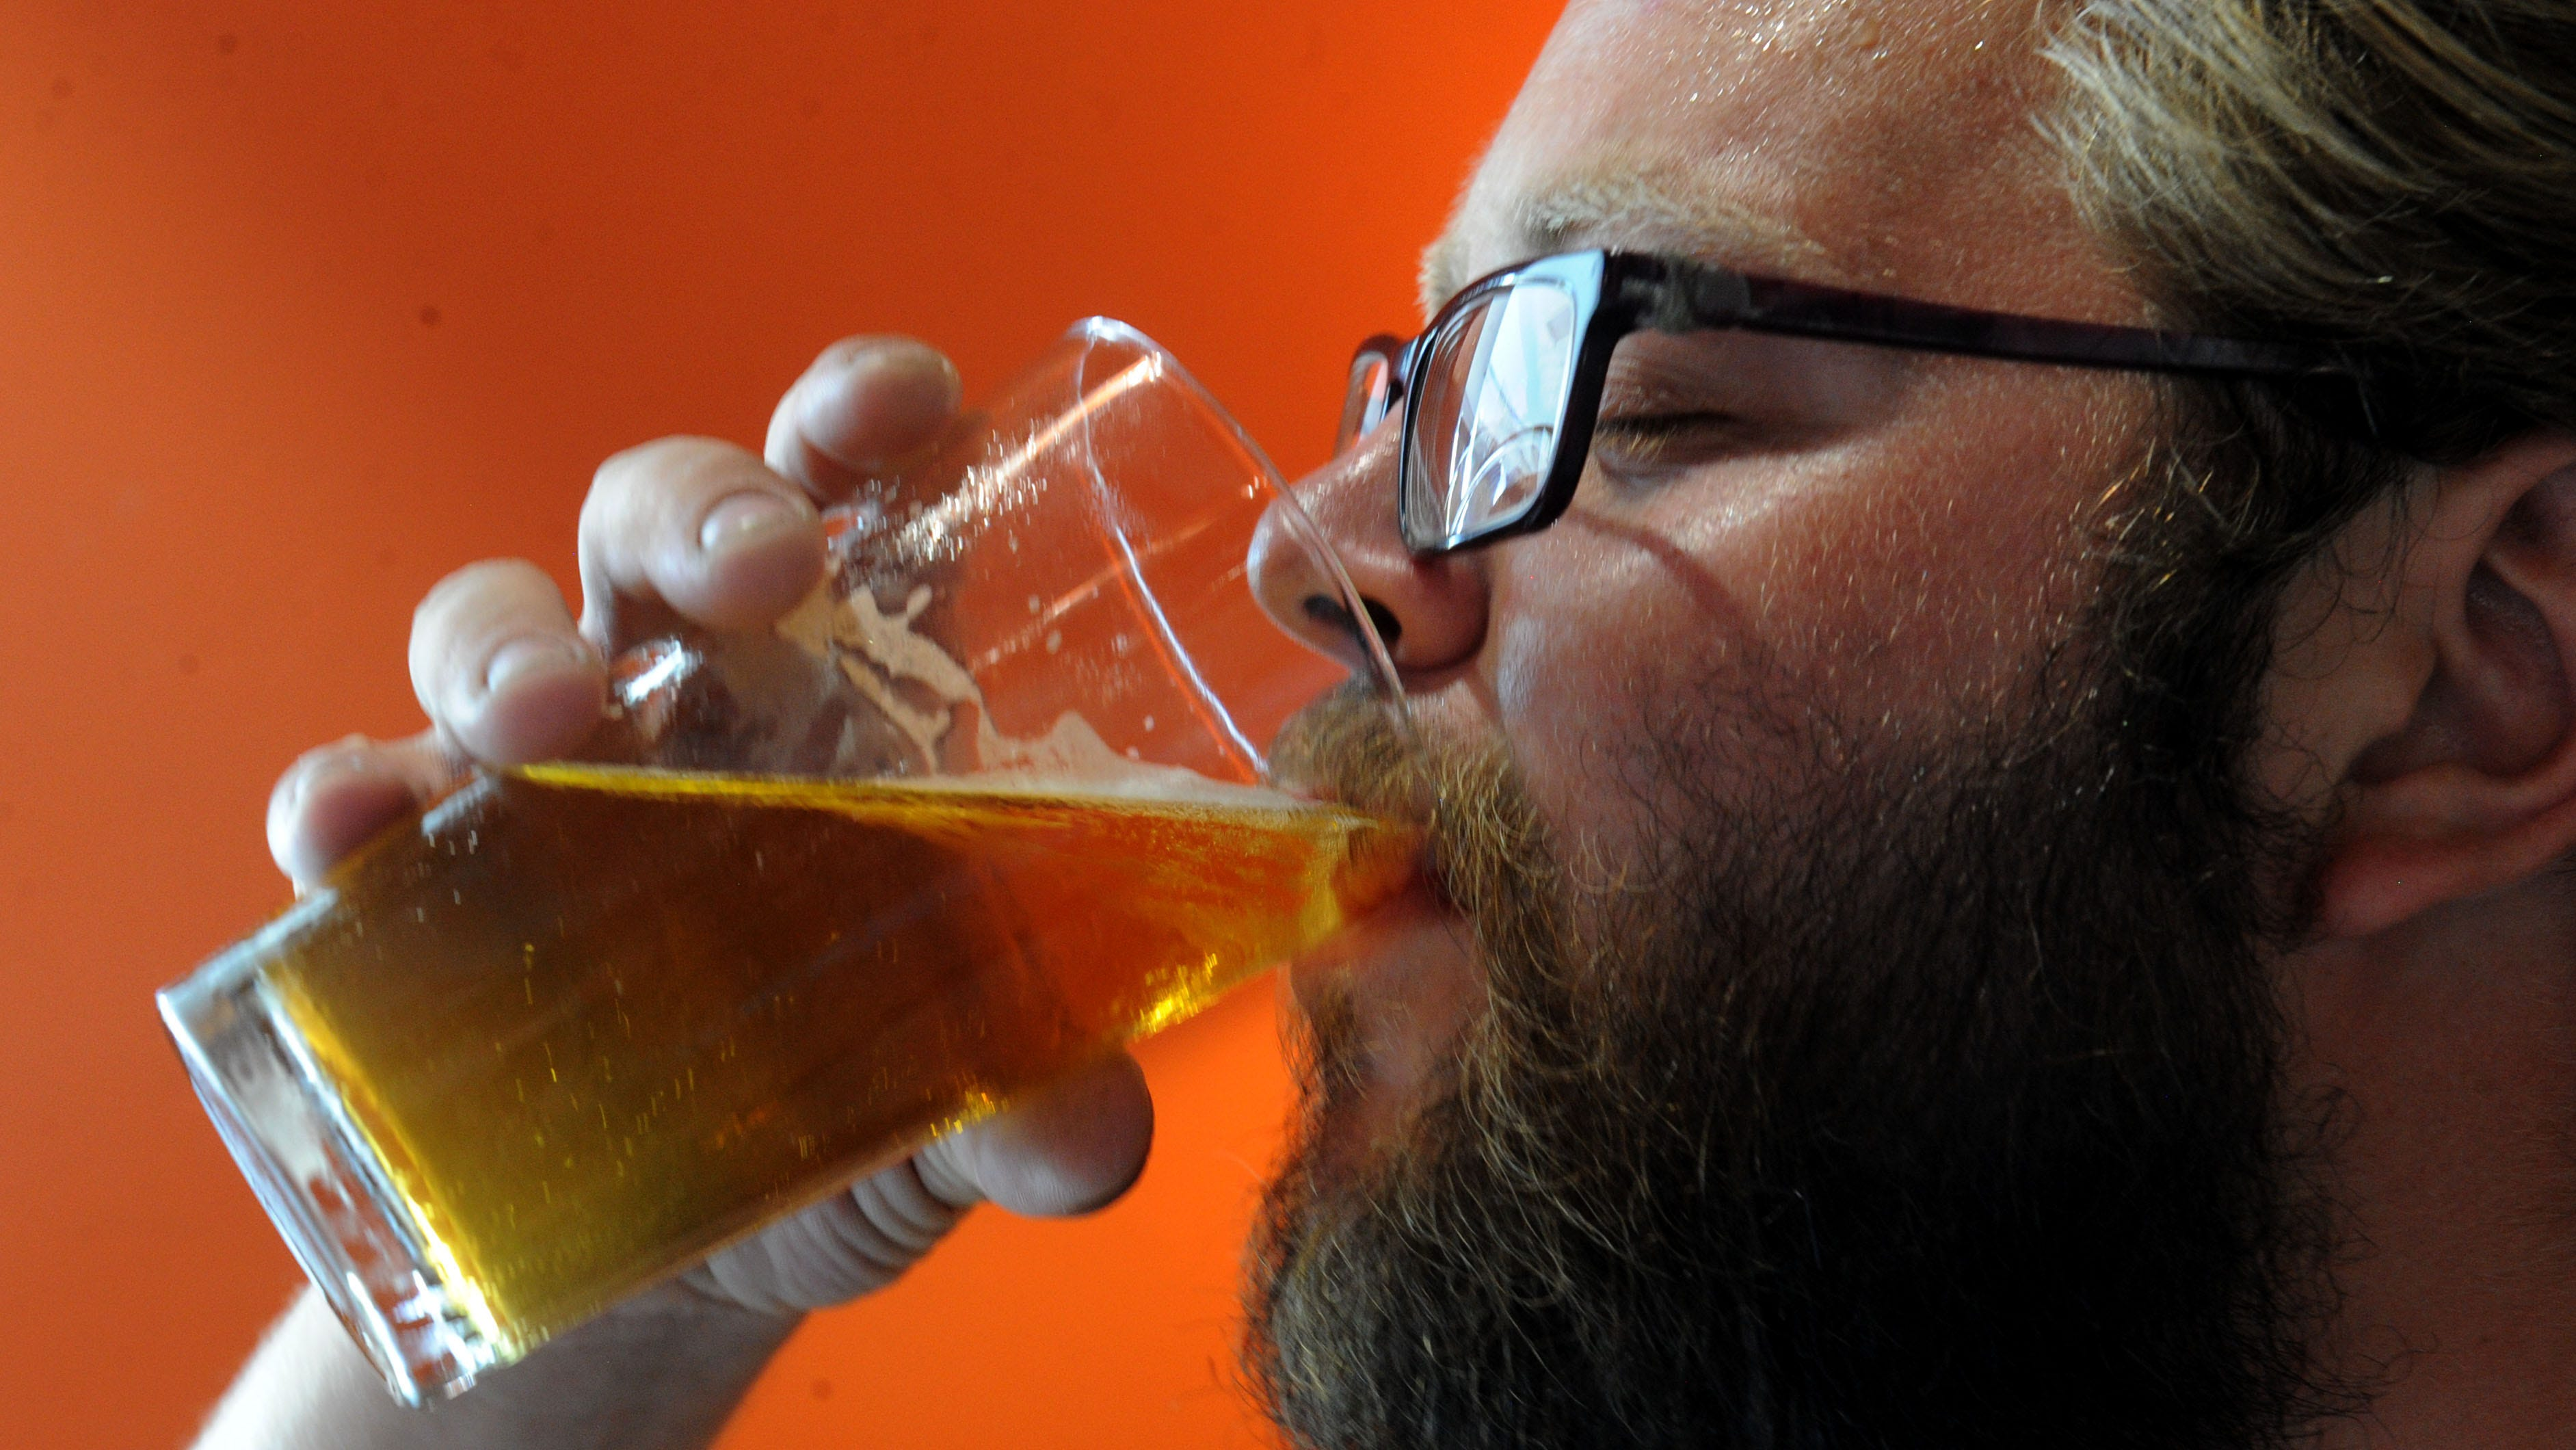 Sean Schottel enjoys the C-Hag beer at Red Tandem Brewery in Oxnard. Red Tandem is one of the vendors that will be serving beer at the Wine, Craft Beer and Art Trail hosted by Oxnard Lions Club at Oxnard Heritage Square on Aug 18.